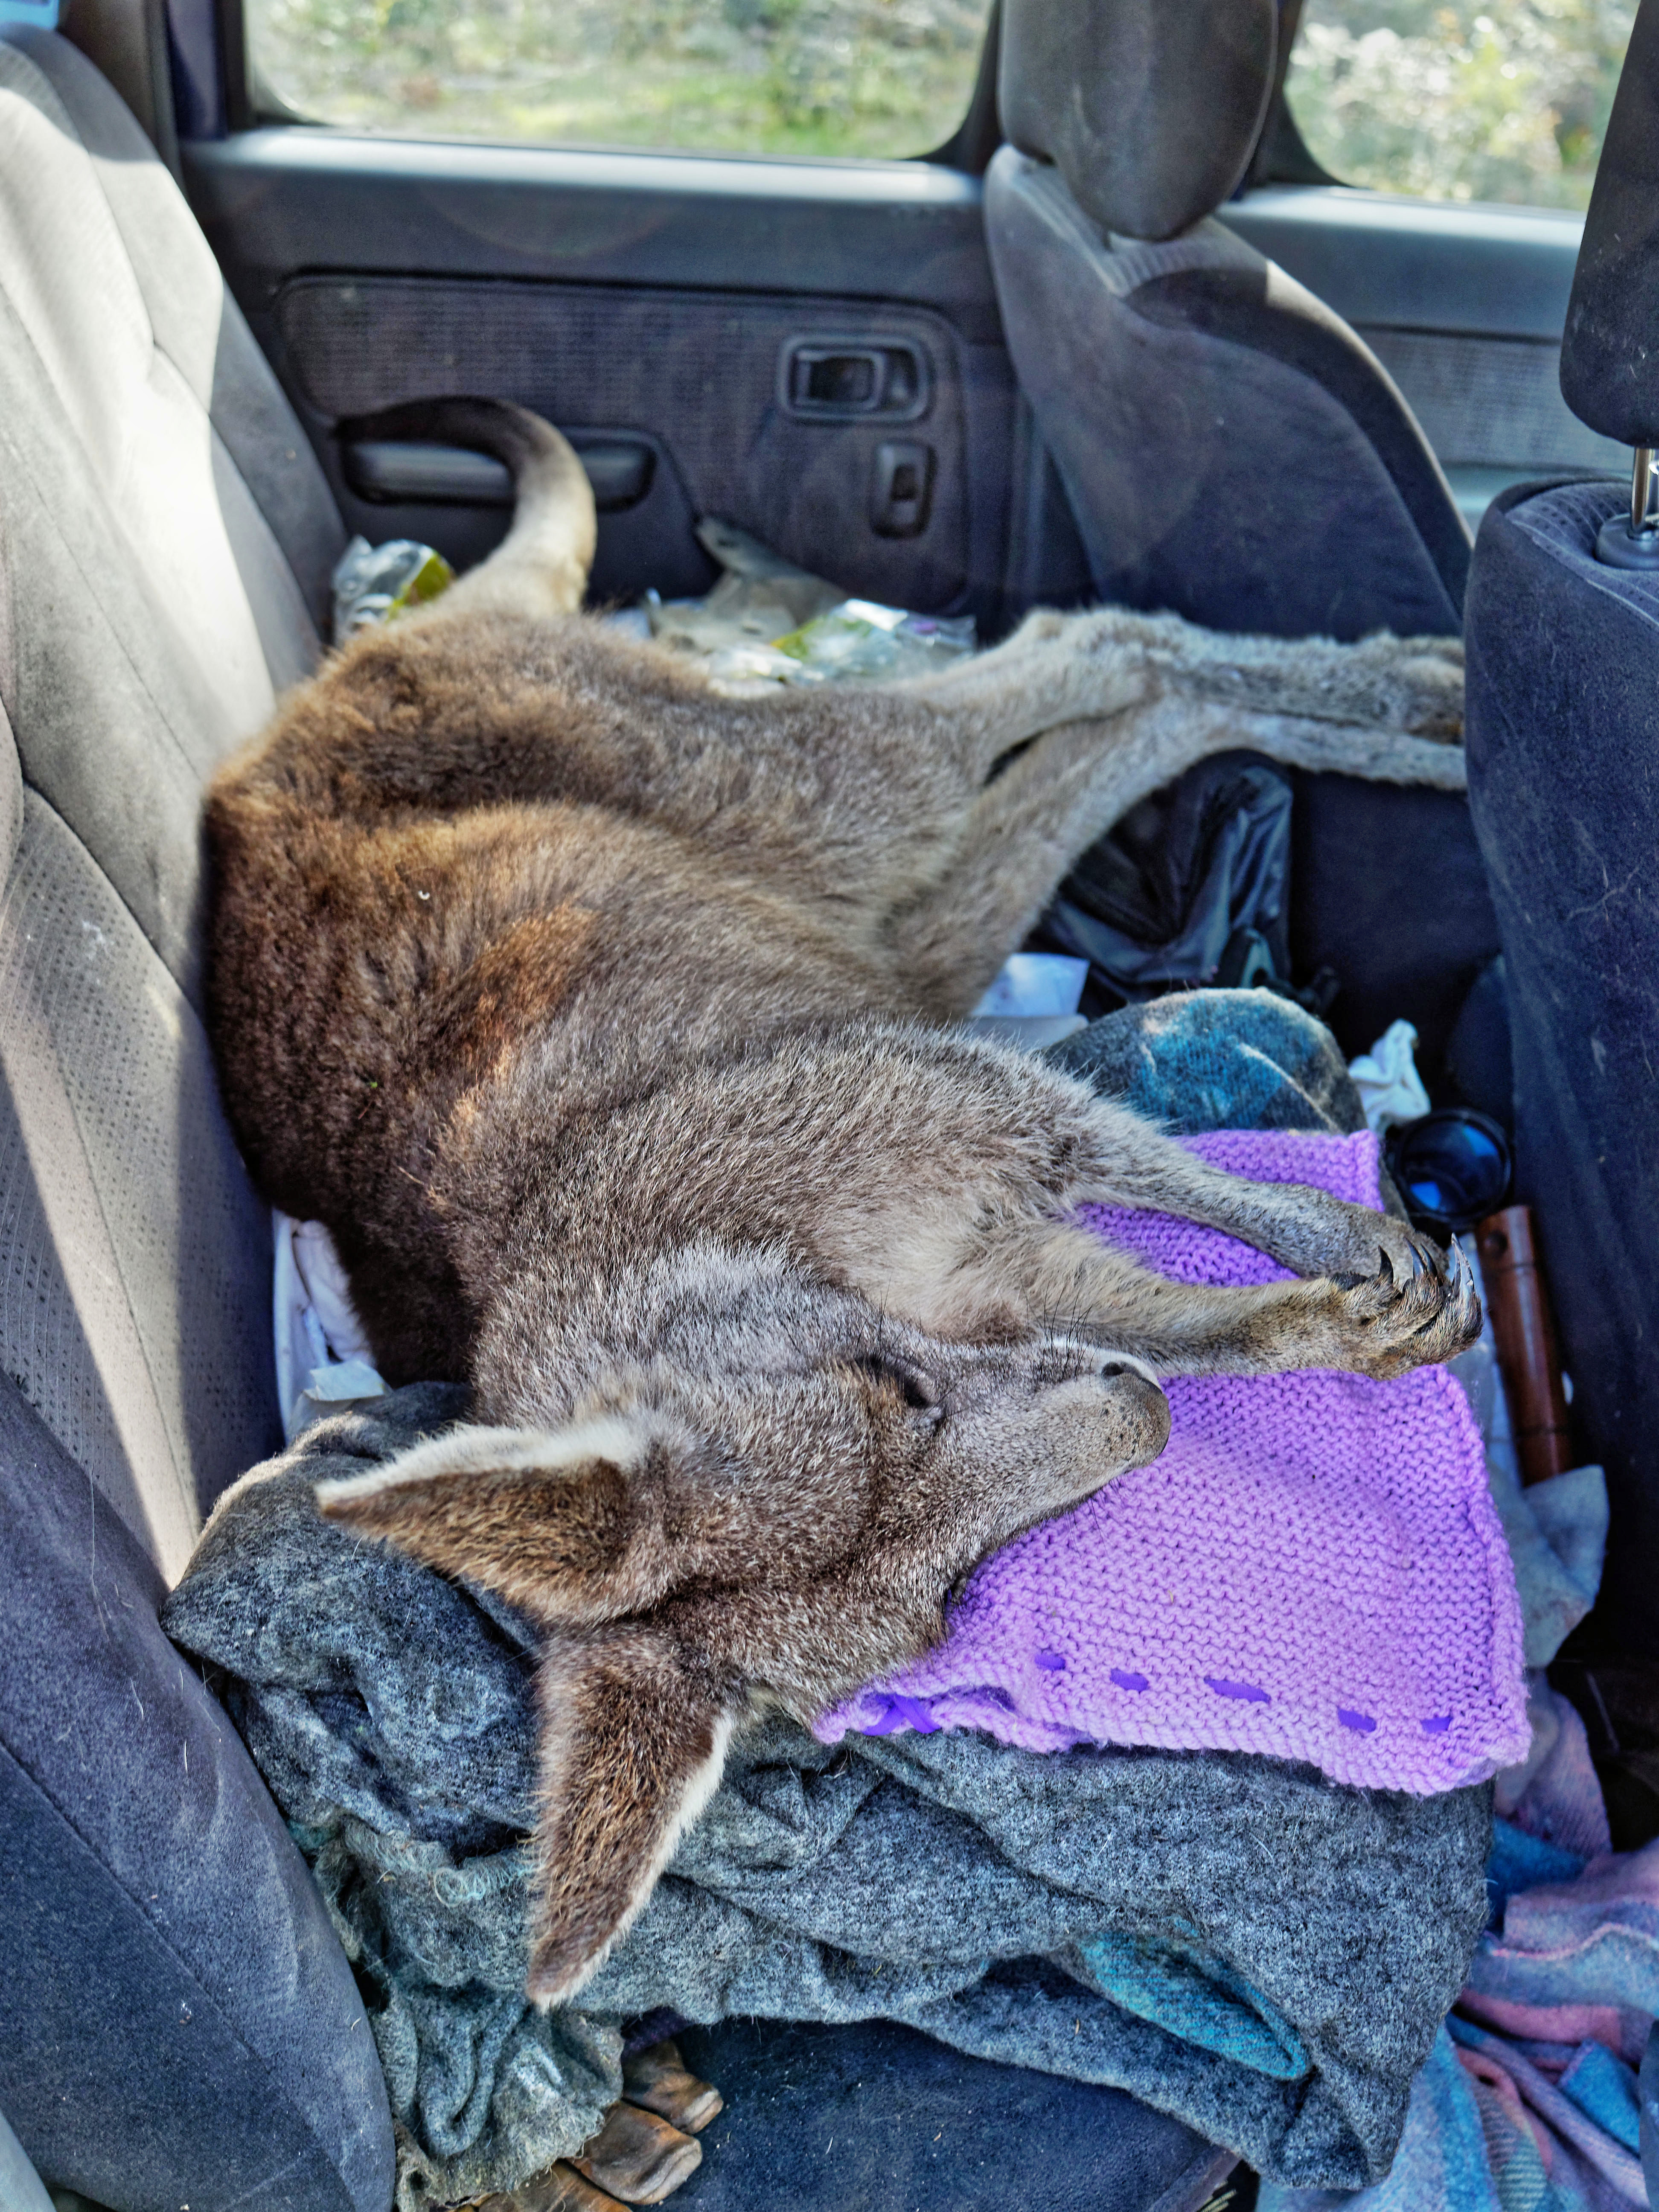 Kangaroo-rescue-44.jpeg